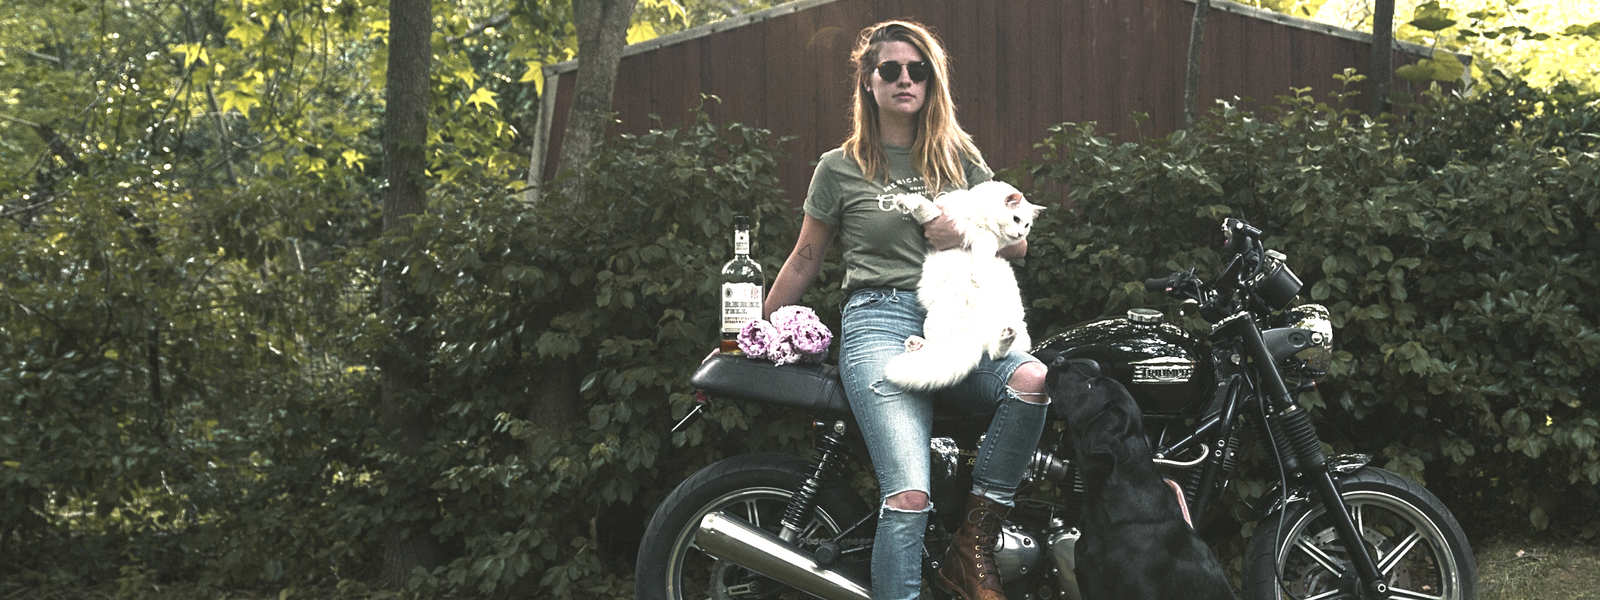 Katie, cats, and motorcycles